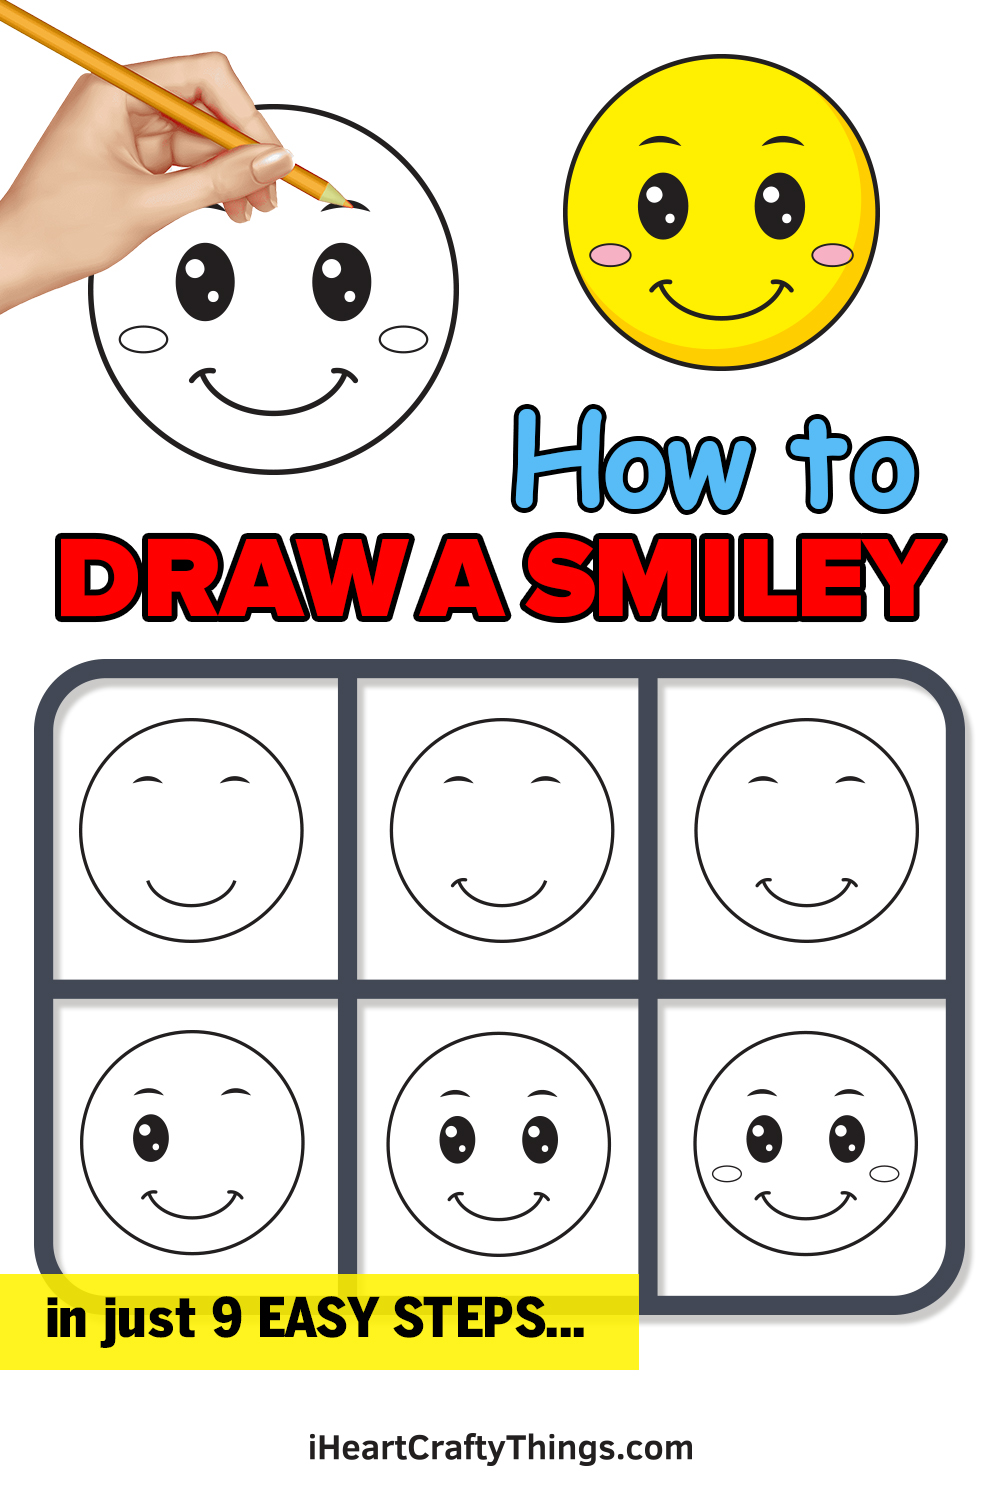 how to draw a smiley in 9 easy steps